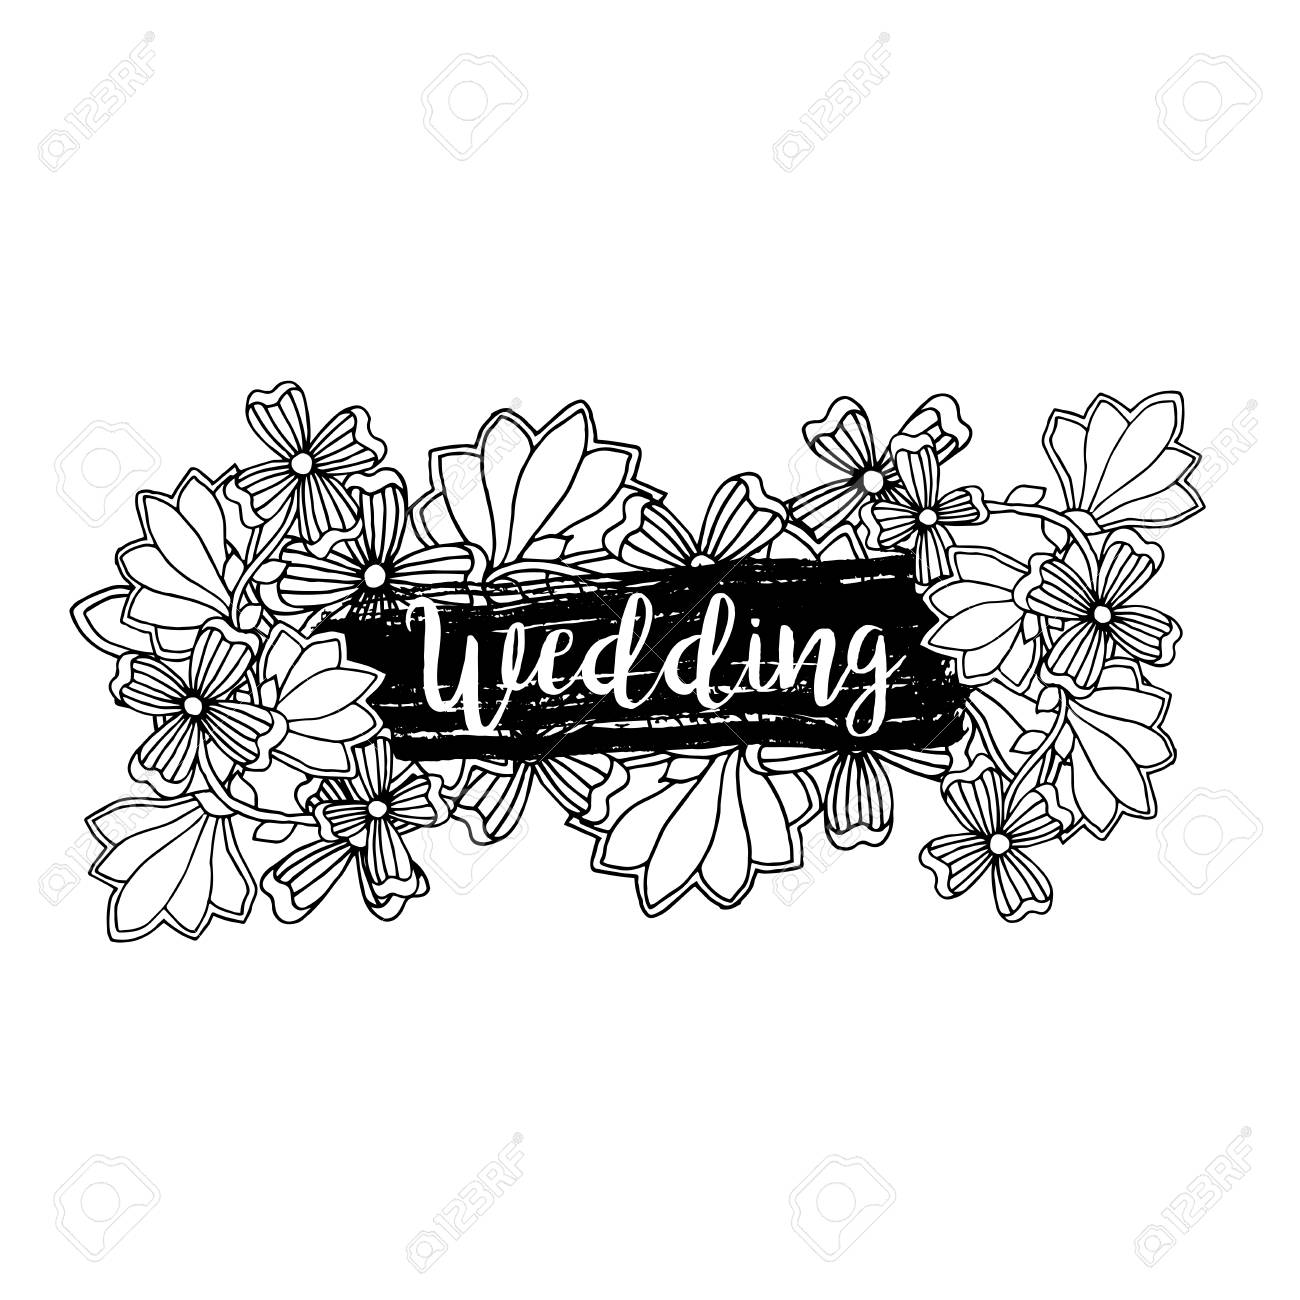 wedding label design with inscription and doodle style floral